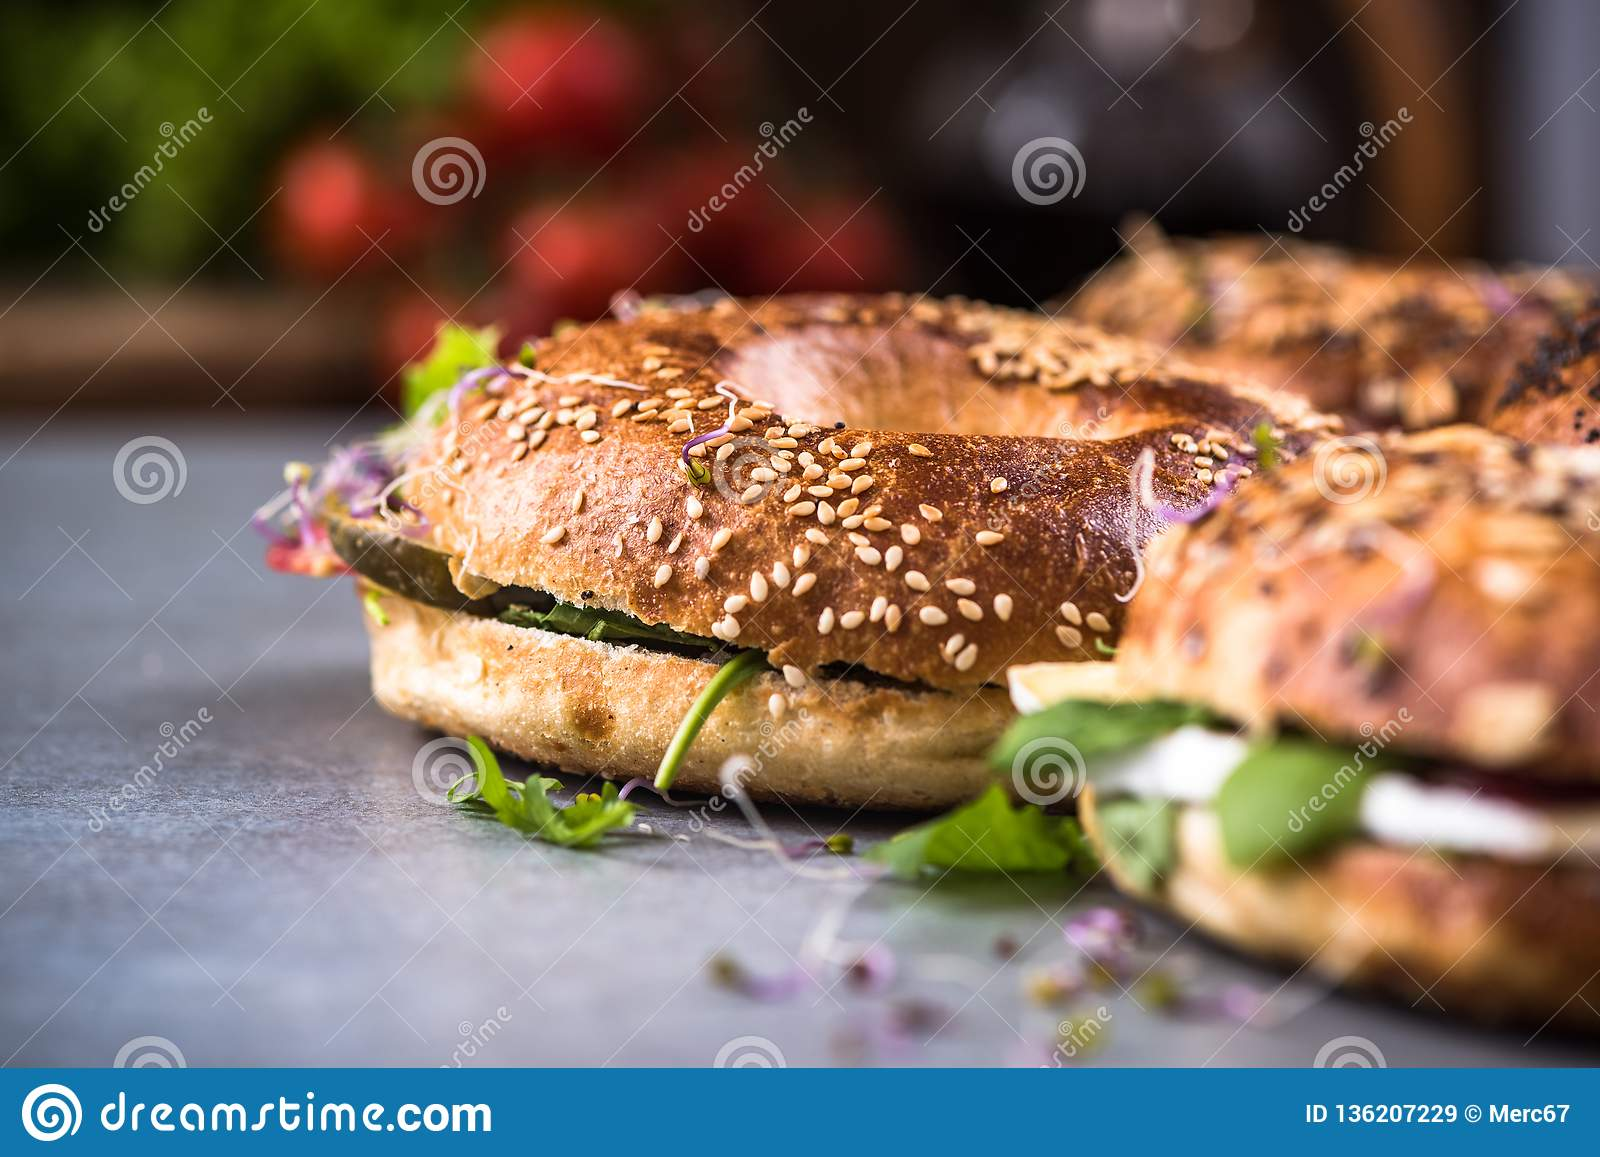 Healthy eating,homemade bagels,close up view